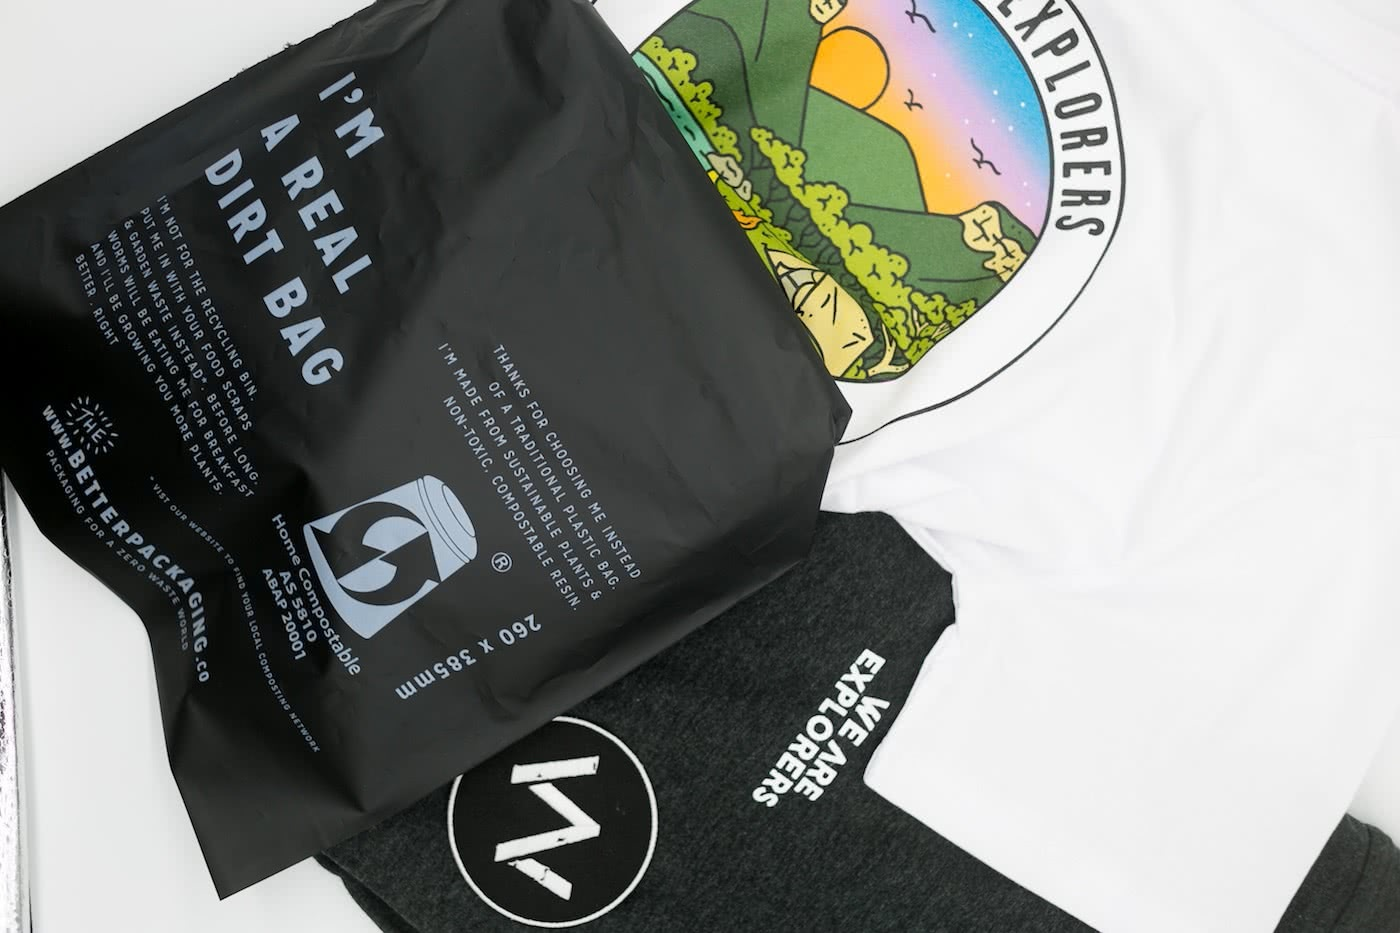 We Are Explorers Merch Store is Live, by Mattie Gould, WAE merch, serenity tee, compost bag, stormy arvo tee